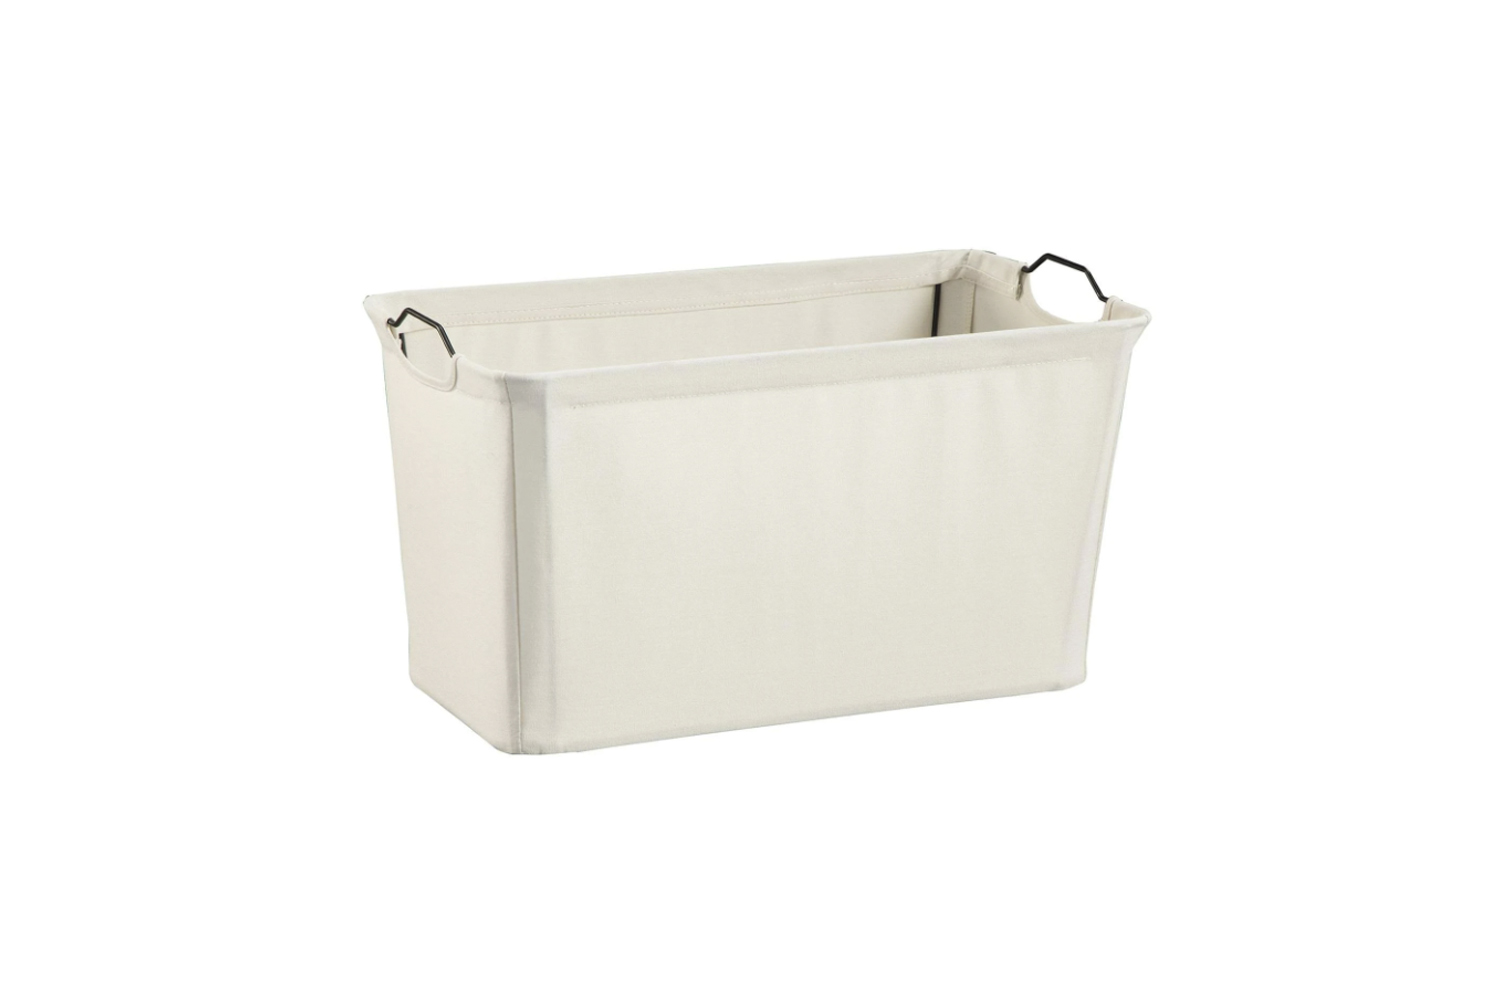 the closetmaid \16\2\2 wide wire frame fabric bin is \$\18.89 at overstock. 12